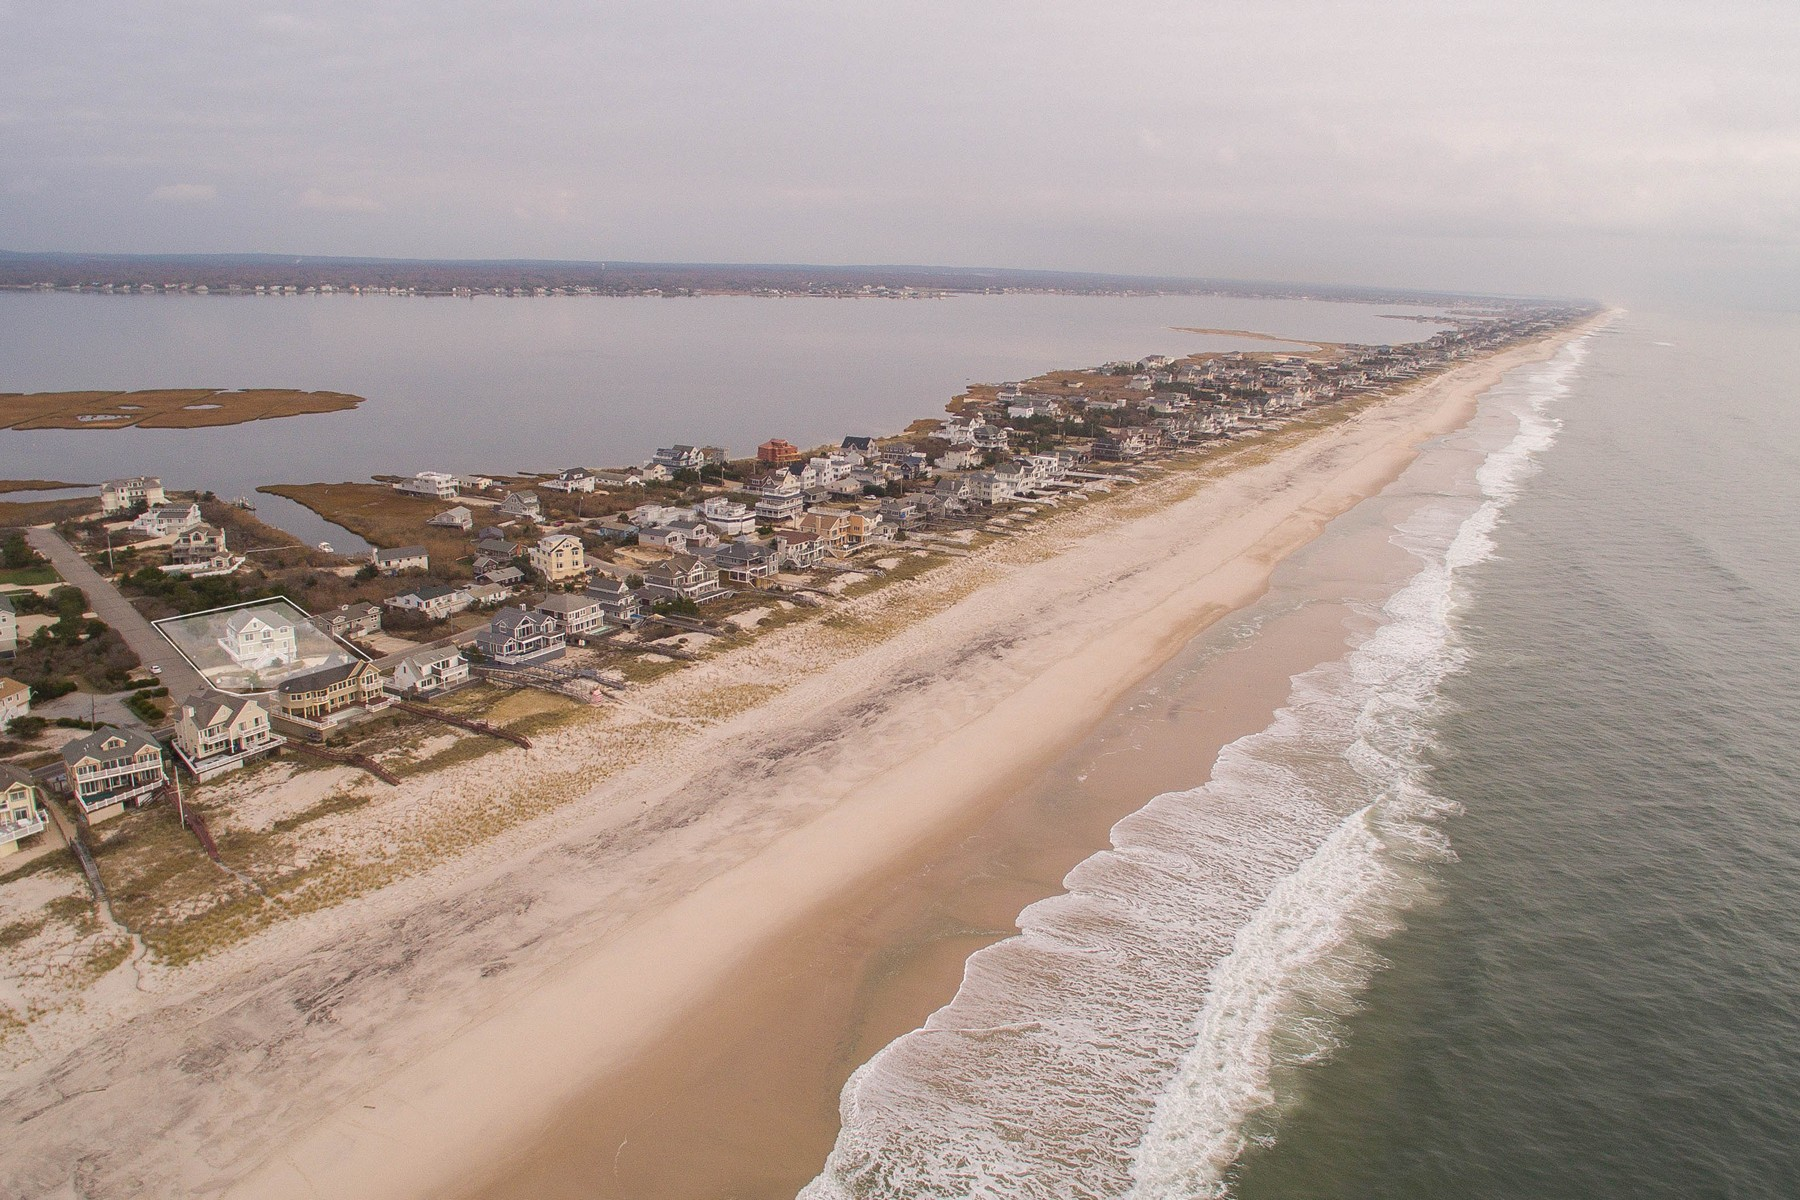 Single Family Home for Active at 902 Dune Rd , Westhampton Bch, NY 11978 902 Dune Rd Westhampton Beach, New York 11978 United States